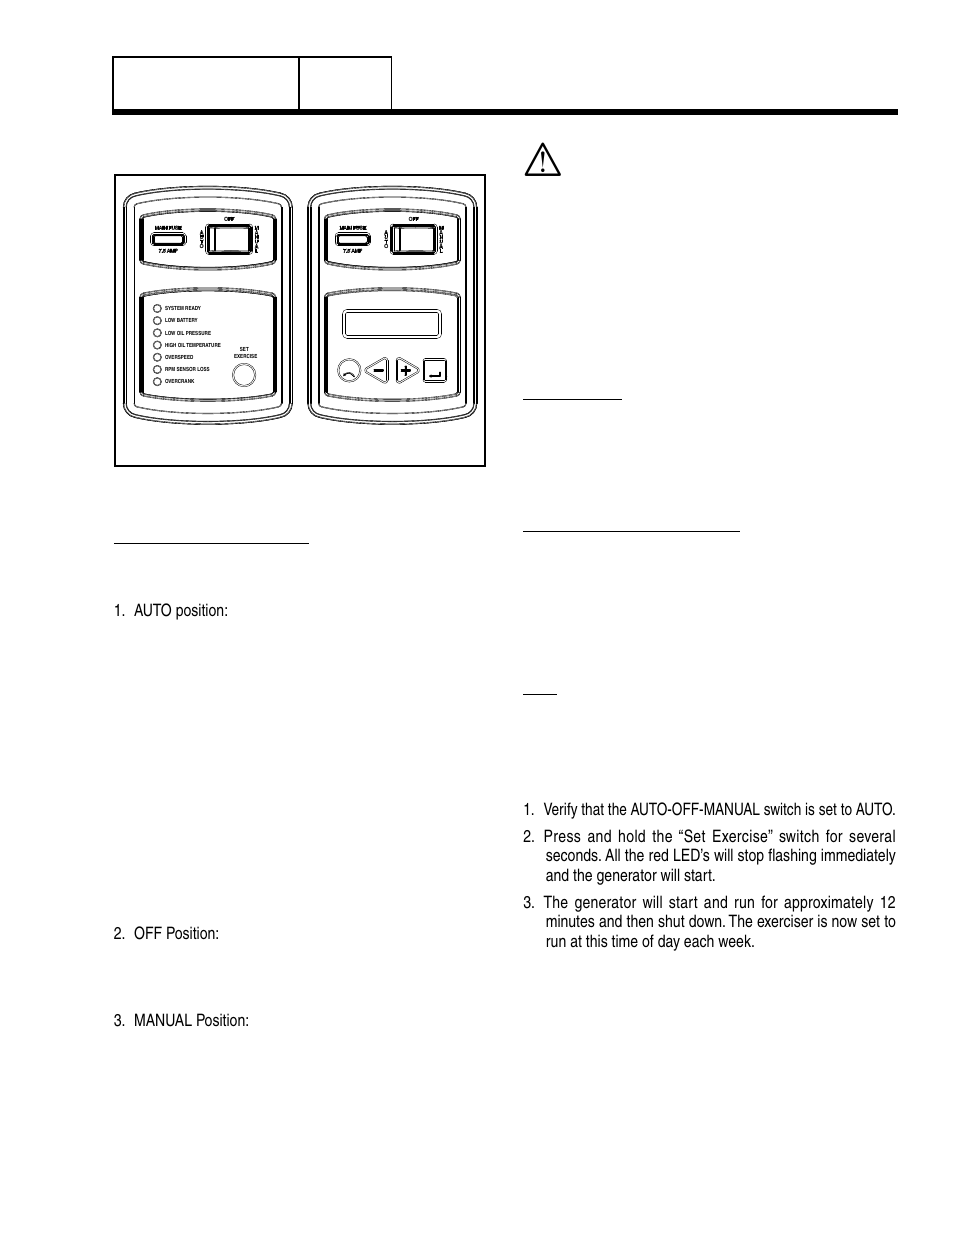 7 operating instructions, Control panel, Operating